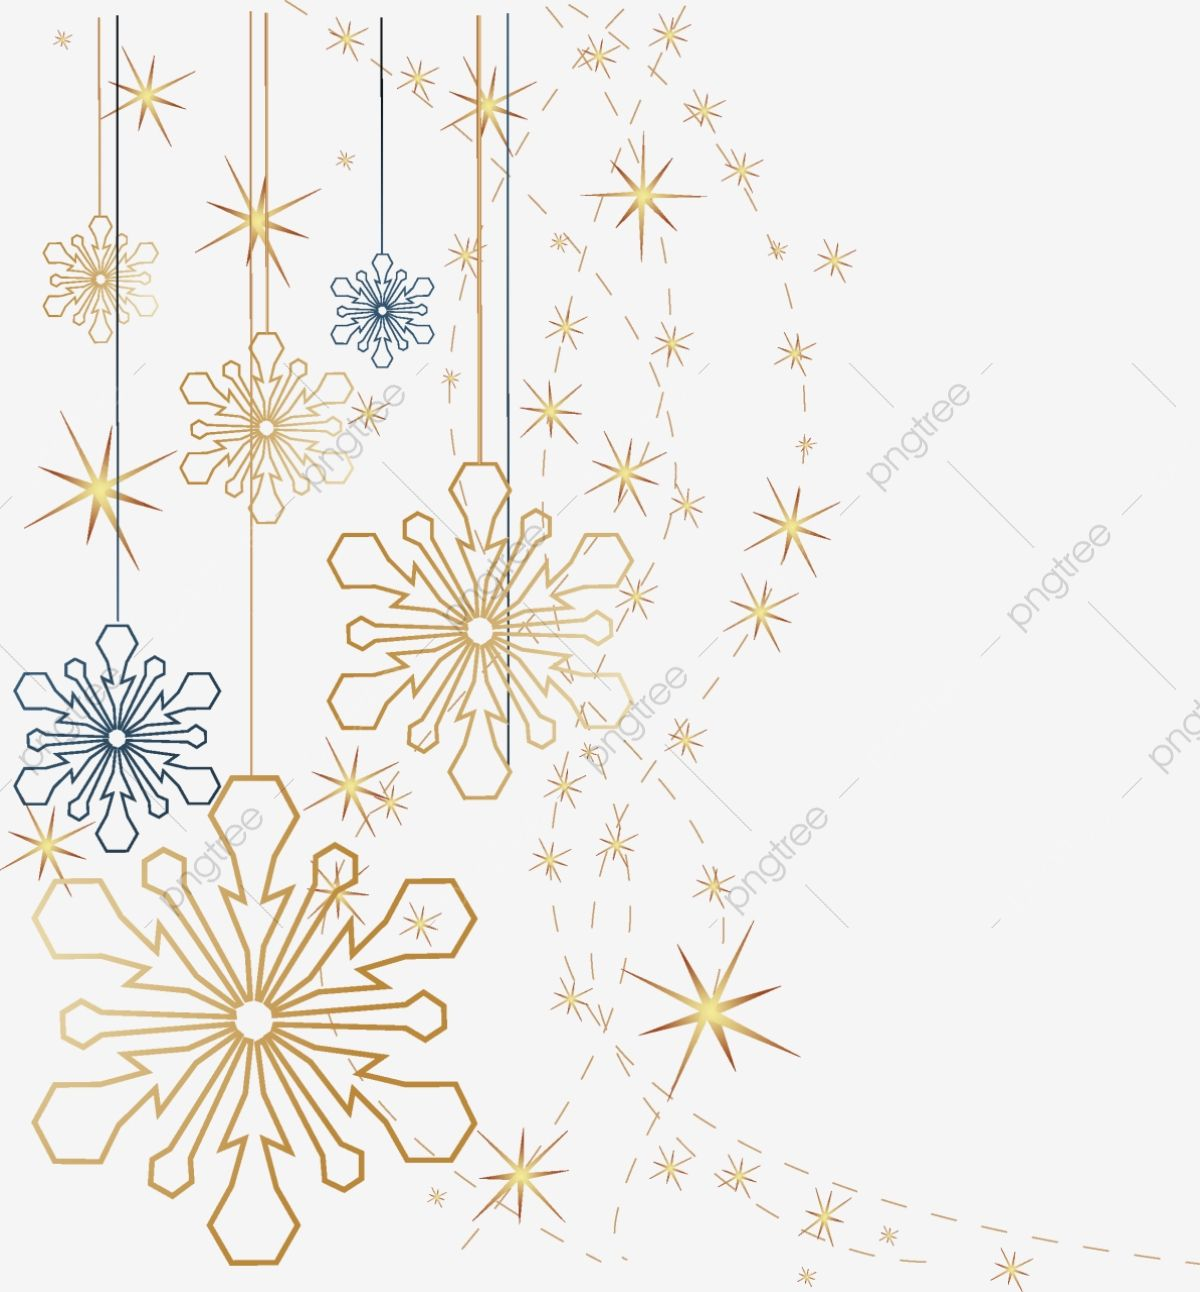 Snowflake Golden Snowflakes Blue Snowflake Png Transparent Clipart Image And Psd File For Free Download Winter Wallpaper Snowflakes Clip Art